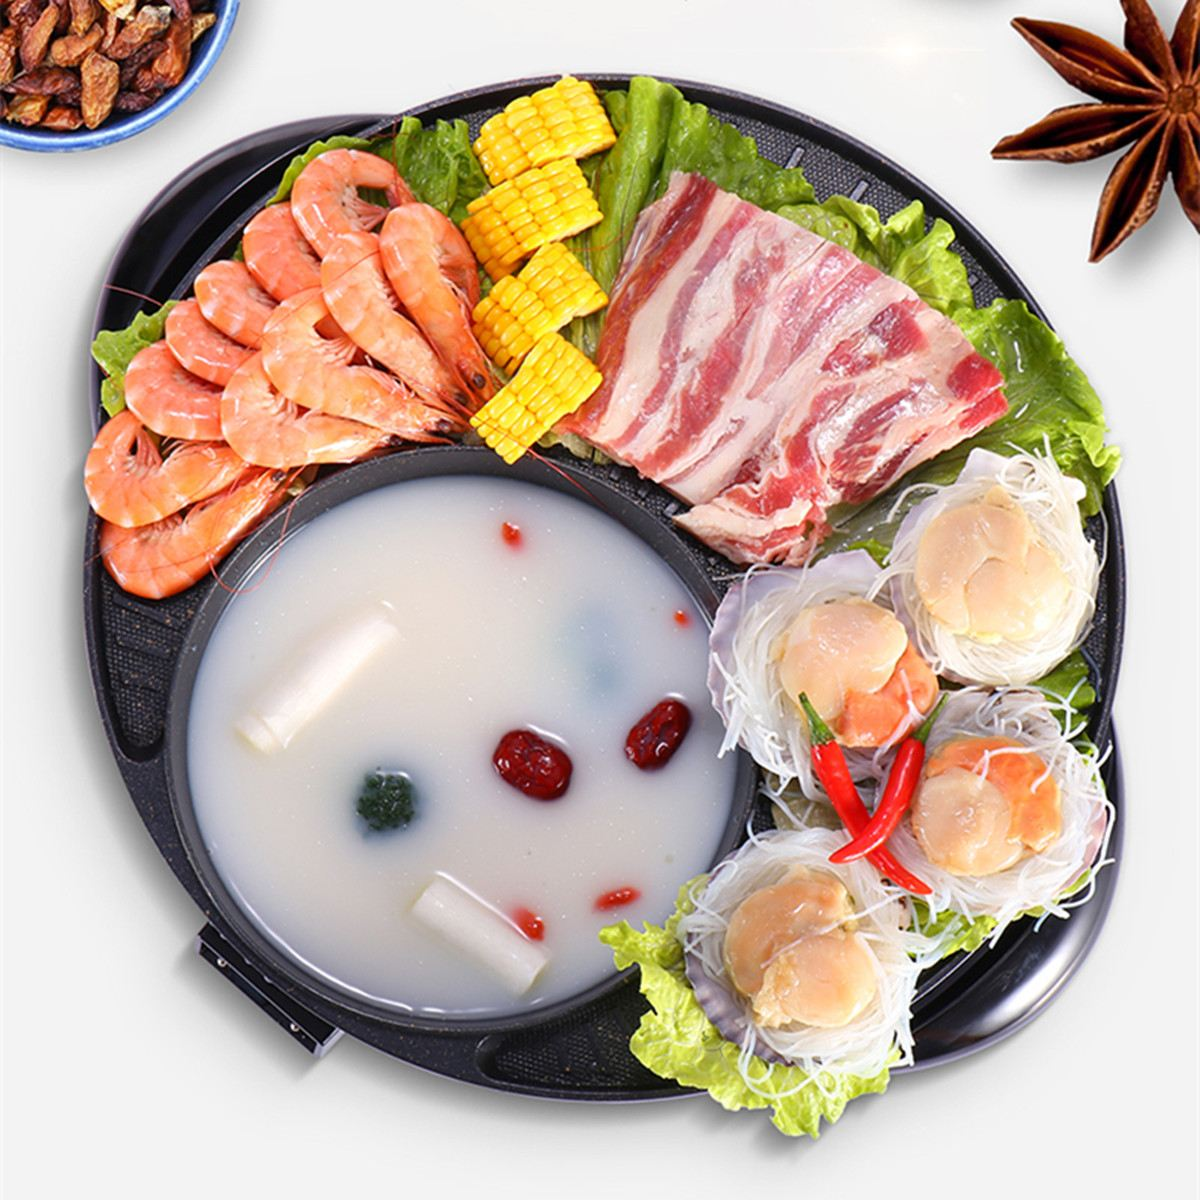 Electric Non Stick Grill Pan Griddle BBQ Smokeless Shabu Shabu Hot Pot Kitchen Cooking Tools Cookware Adjustable Heat Control